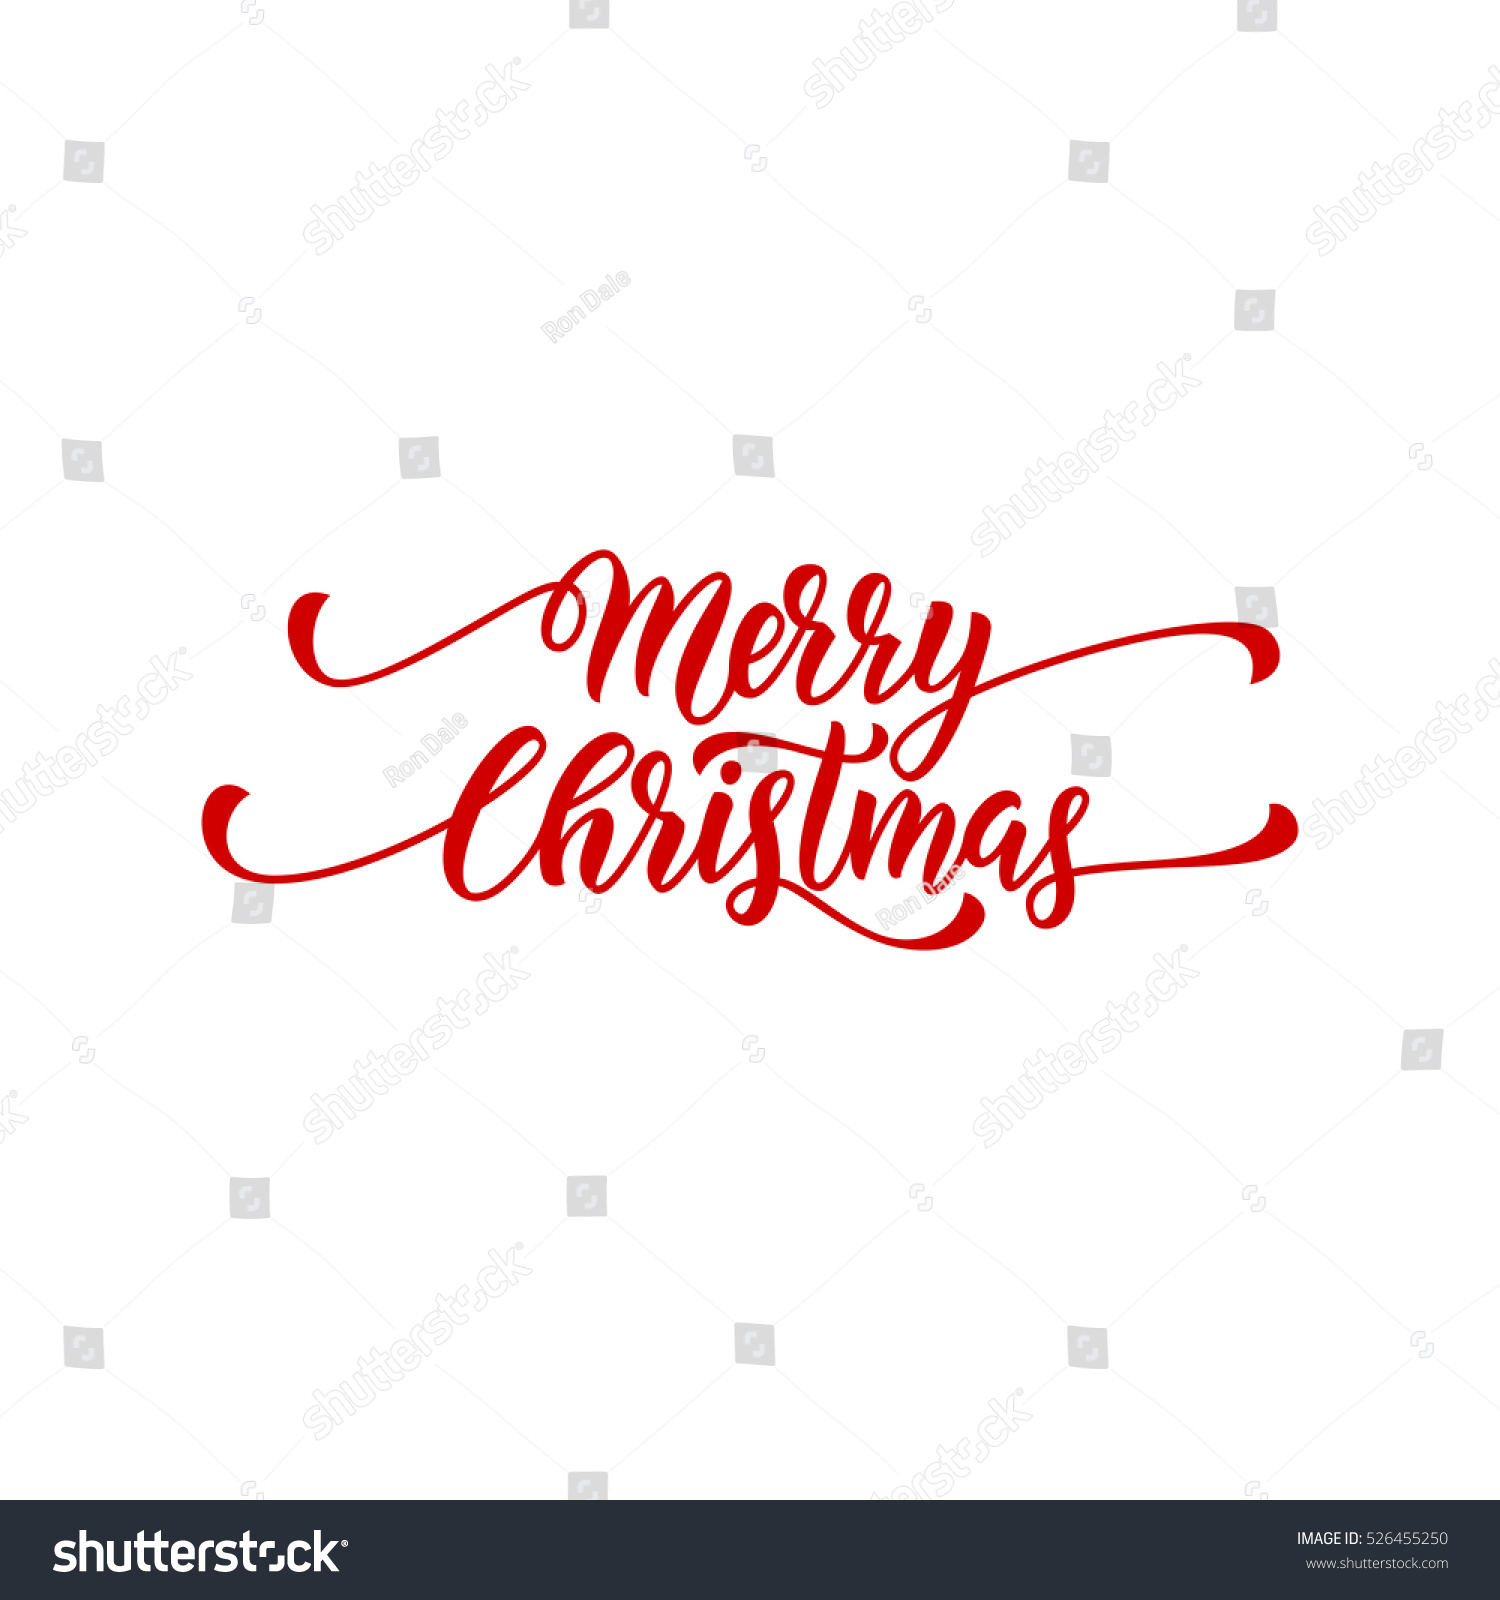 Merry Christmas Vector Text Calligraphy Lettering Stock